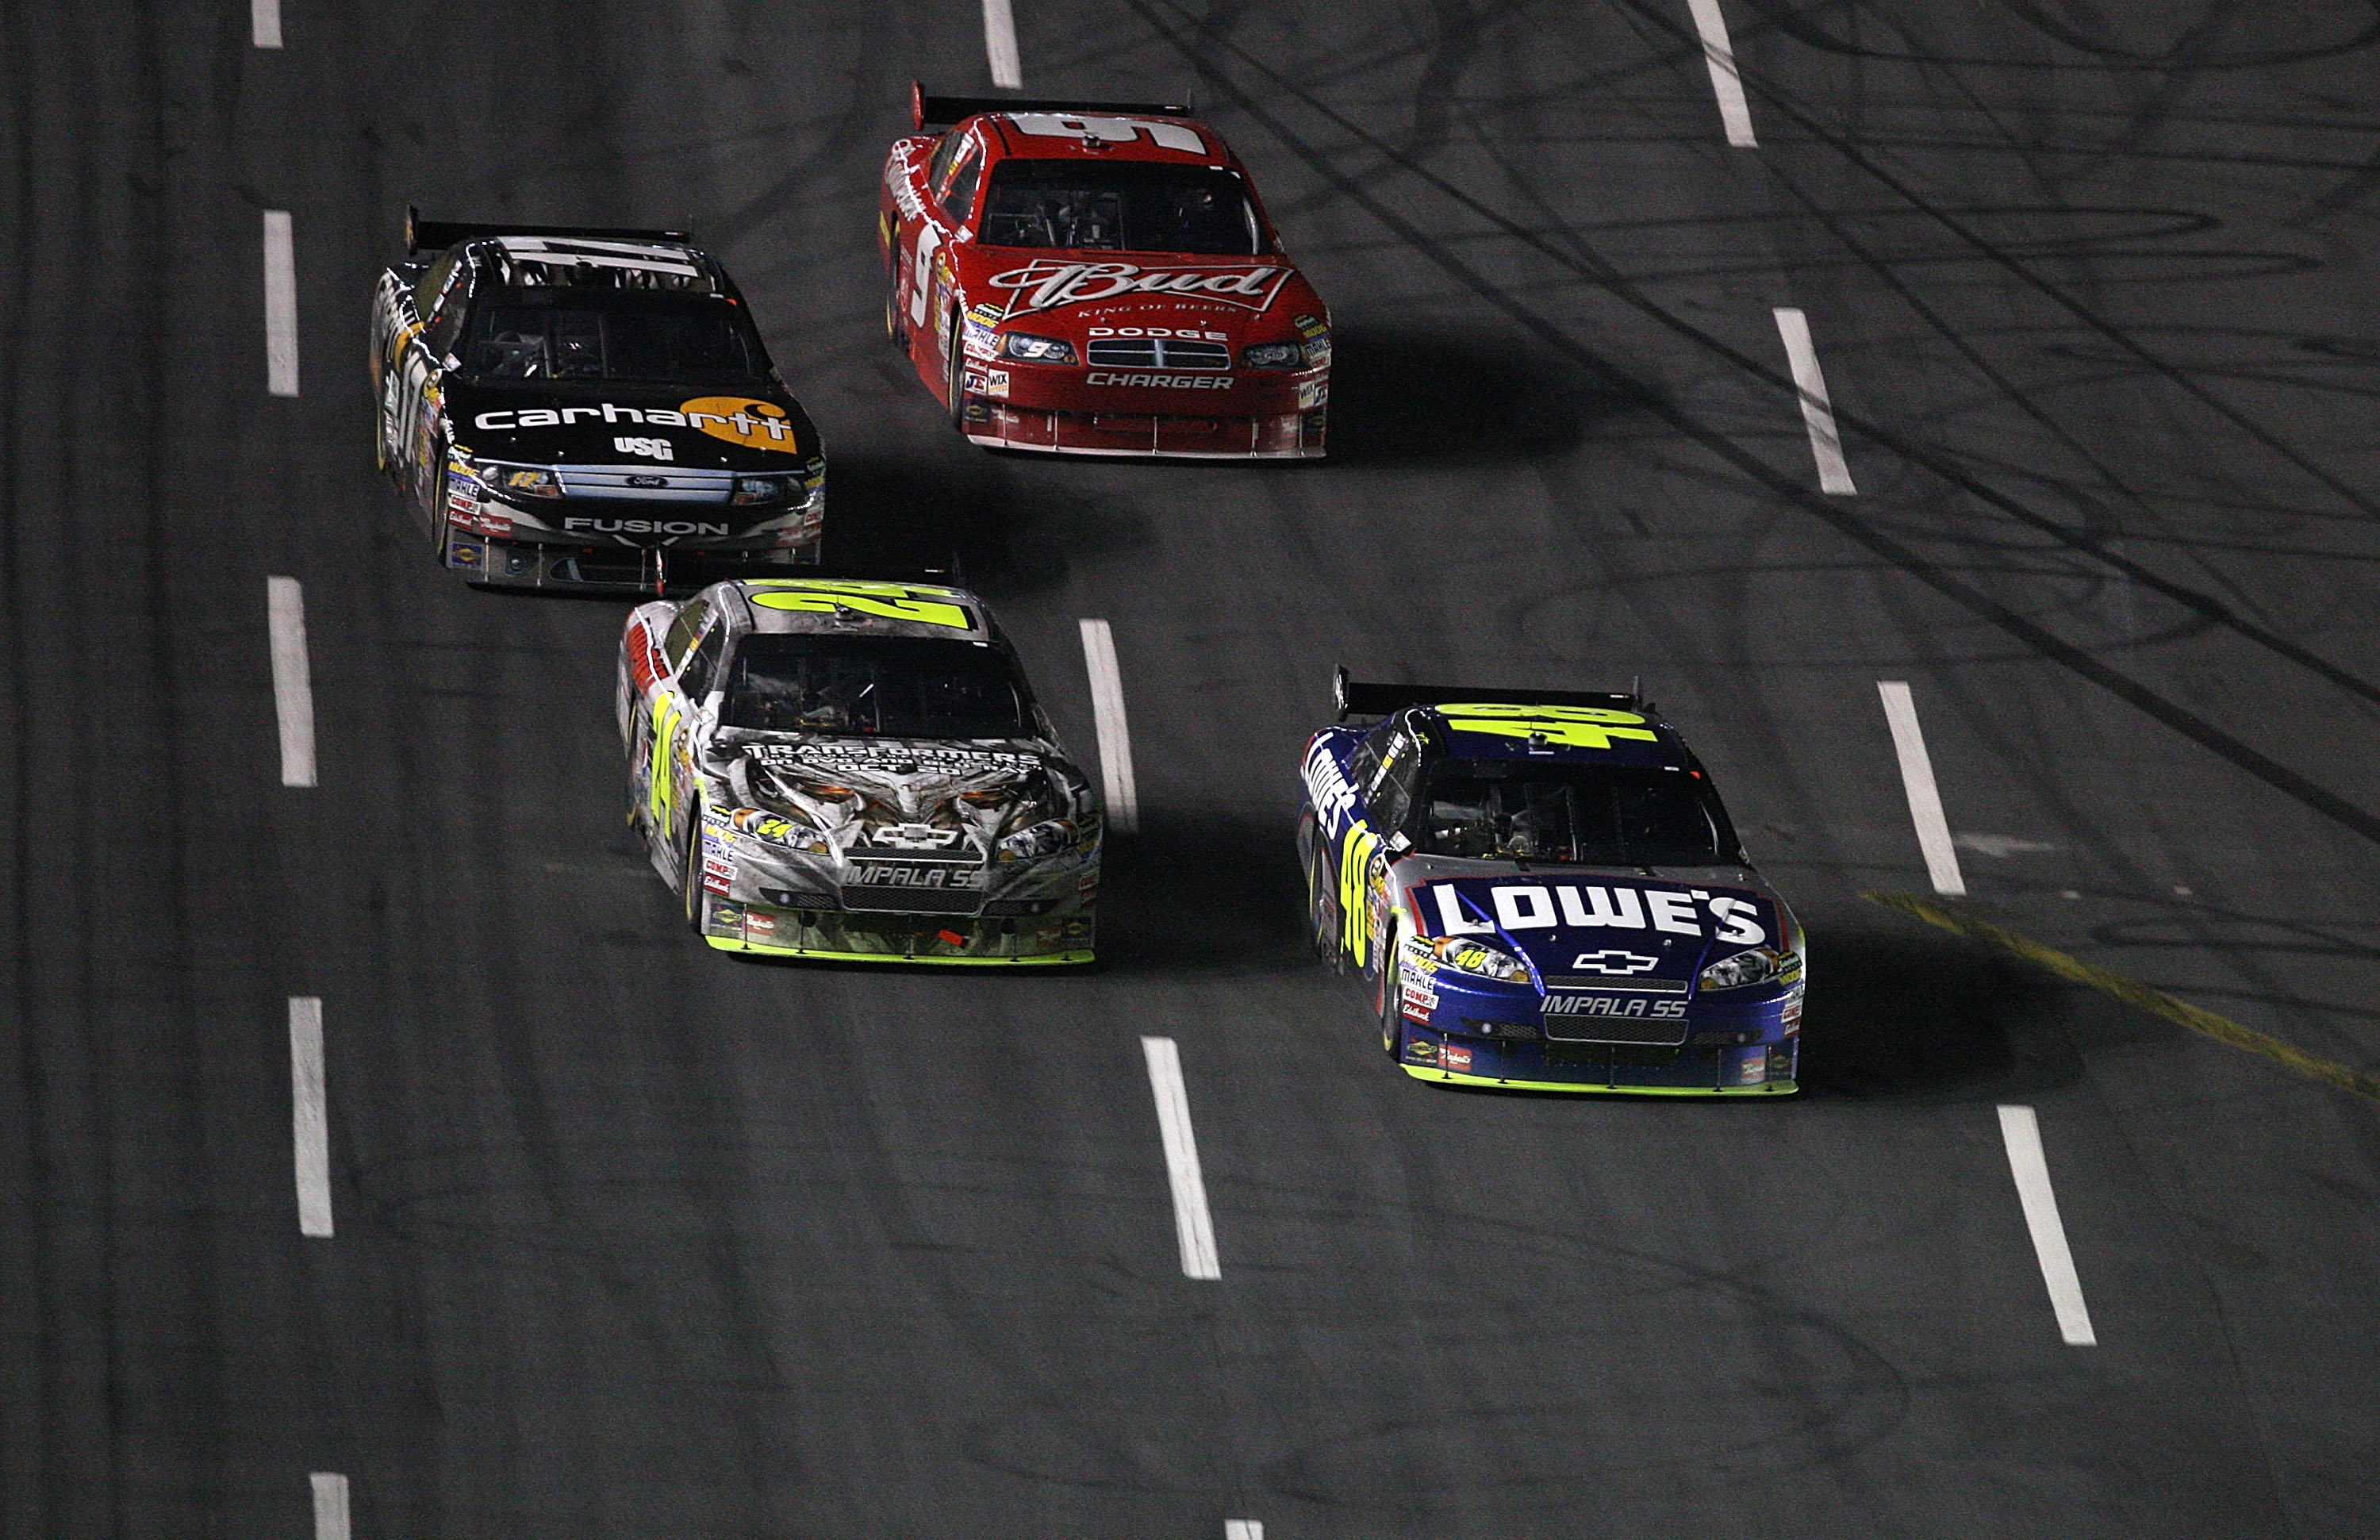 CONCORD, NC - OCTOBER 17:  Jimmie Johnson, driver of the #48 Lowe's Chevrolet, races Jeff Gordon, driver of the #24 DuPont/Transformers 2 Chevrolet, Matt Kenseth, driver of the #17 Carhartt Ford, and Kasey Kahne, driver of the #9 Bedweiser Dodge, during t